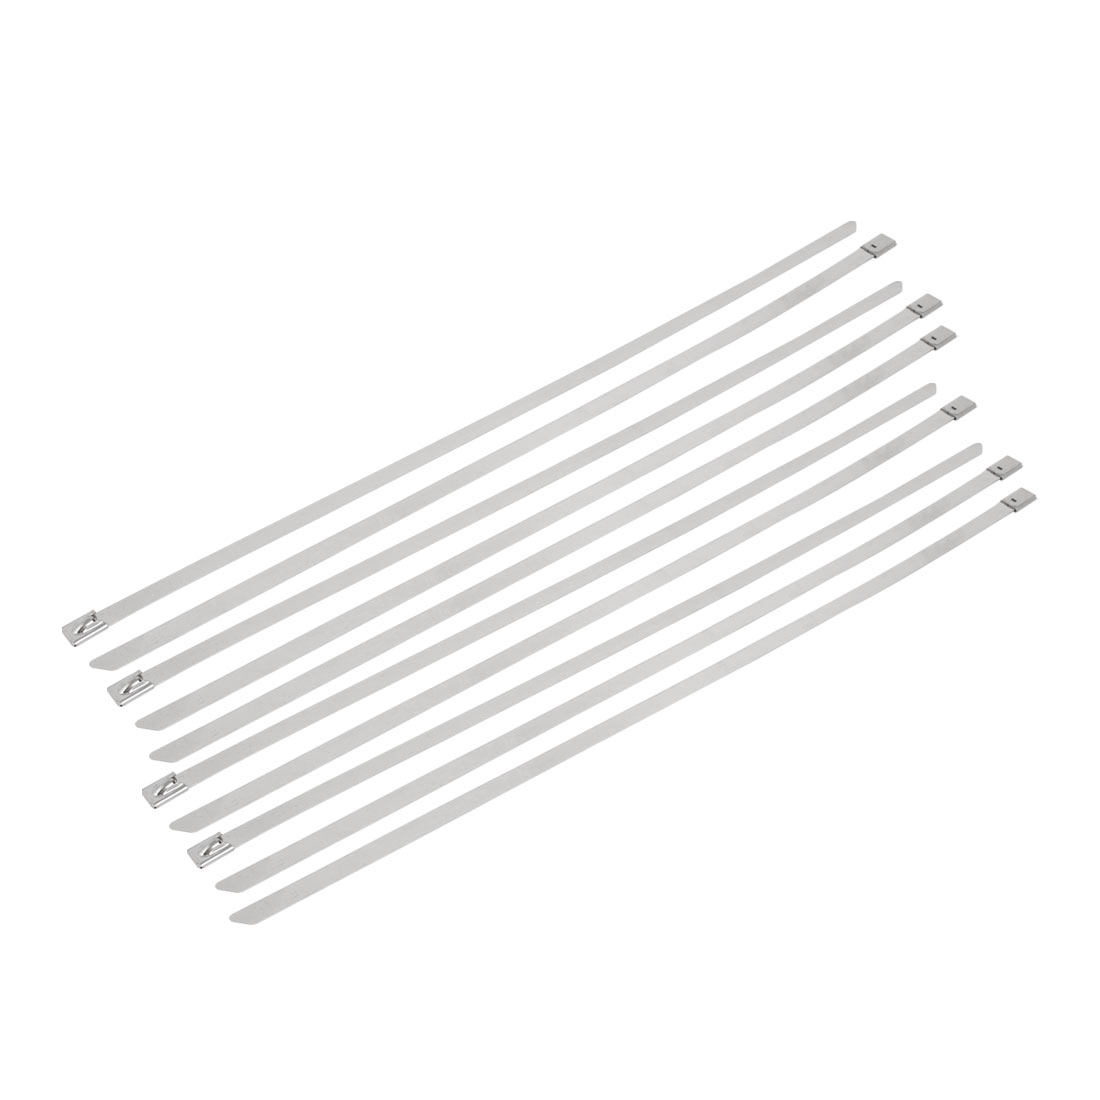 10pcs 8mm Width 400mm Length Stainless Steel Cable Tie Wire Strap Silver Tone